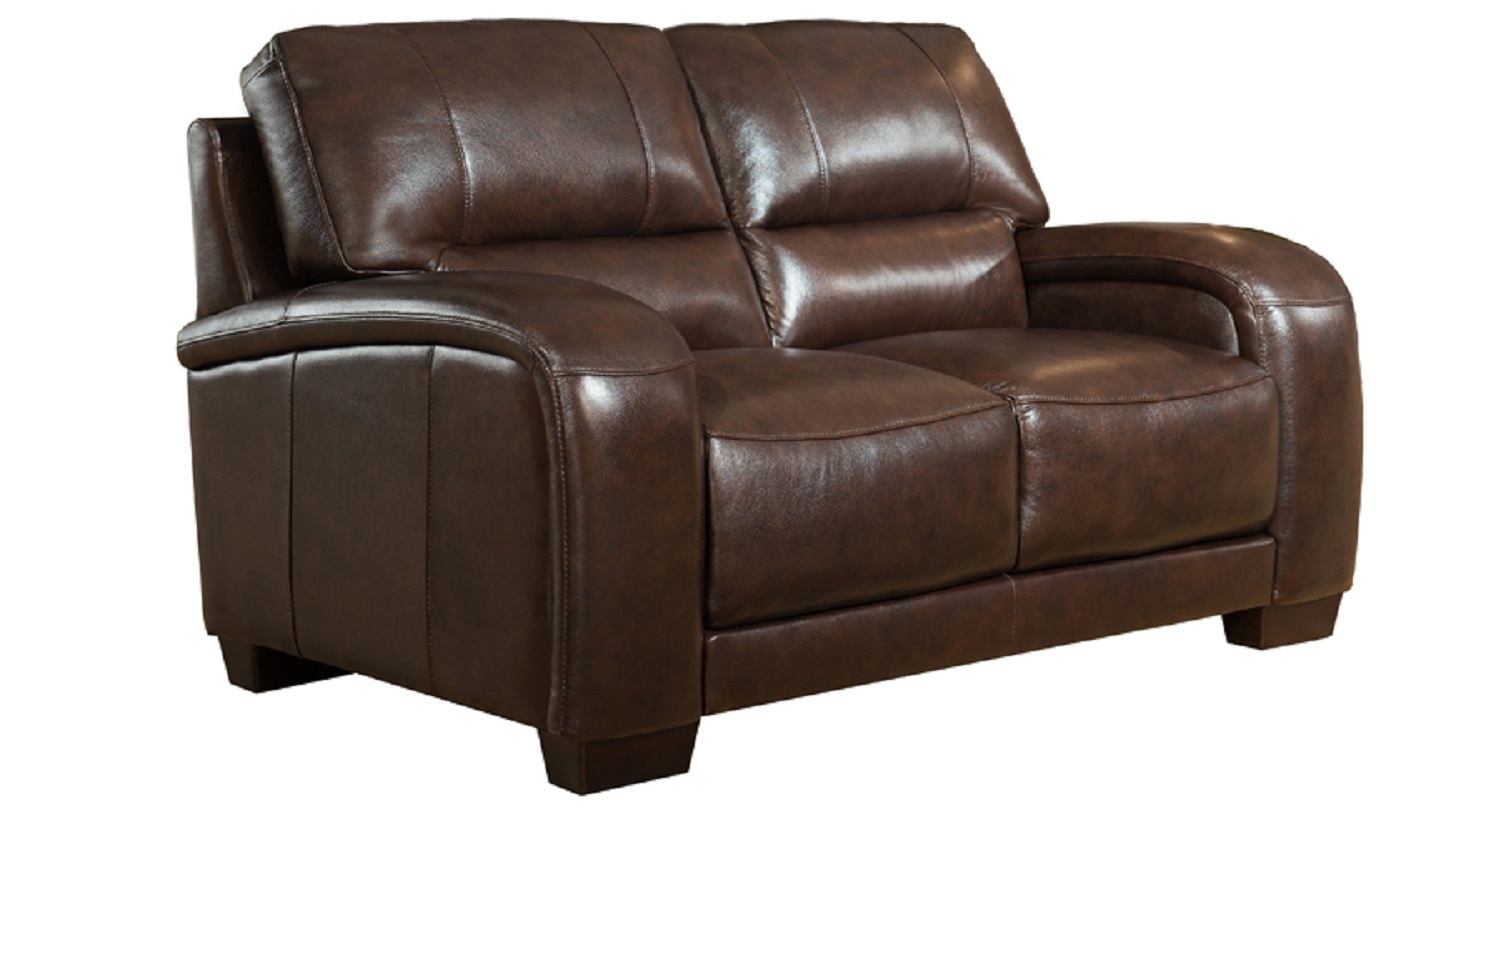 Jane Furniture Brigitte Top Grain Dark Brown Leather